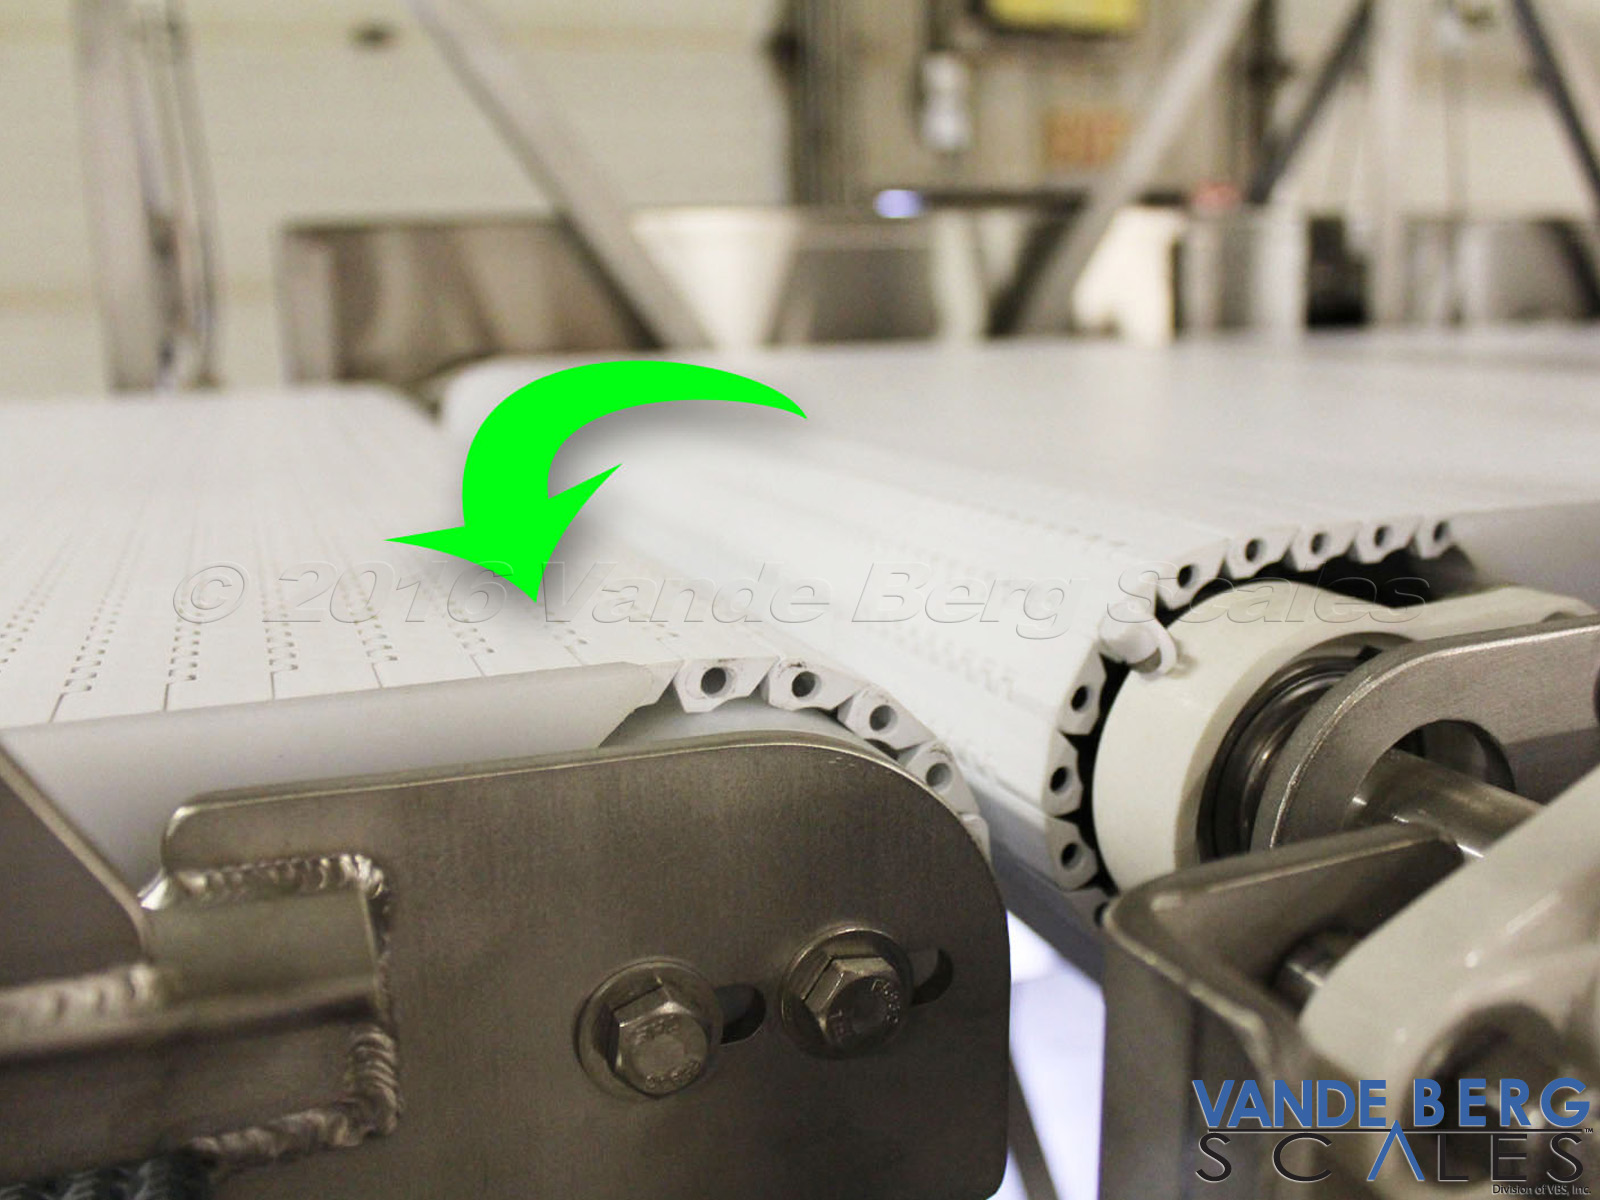 Often conveyors feature a slight cascading design which permits better product transfer to the next section.